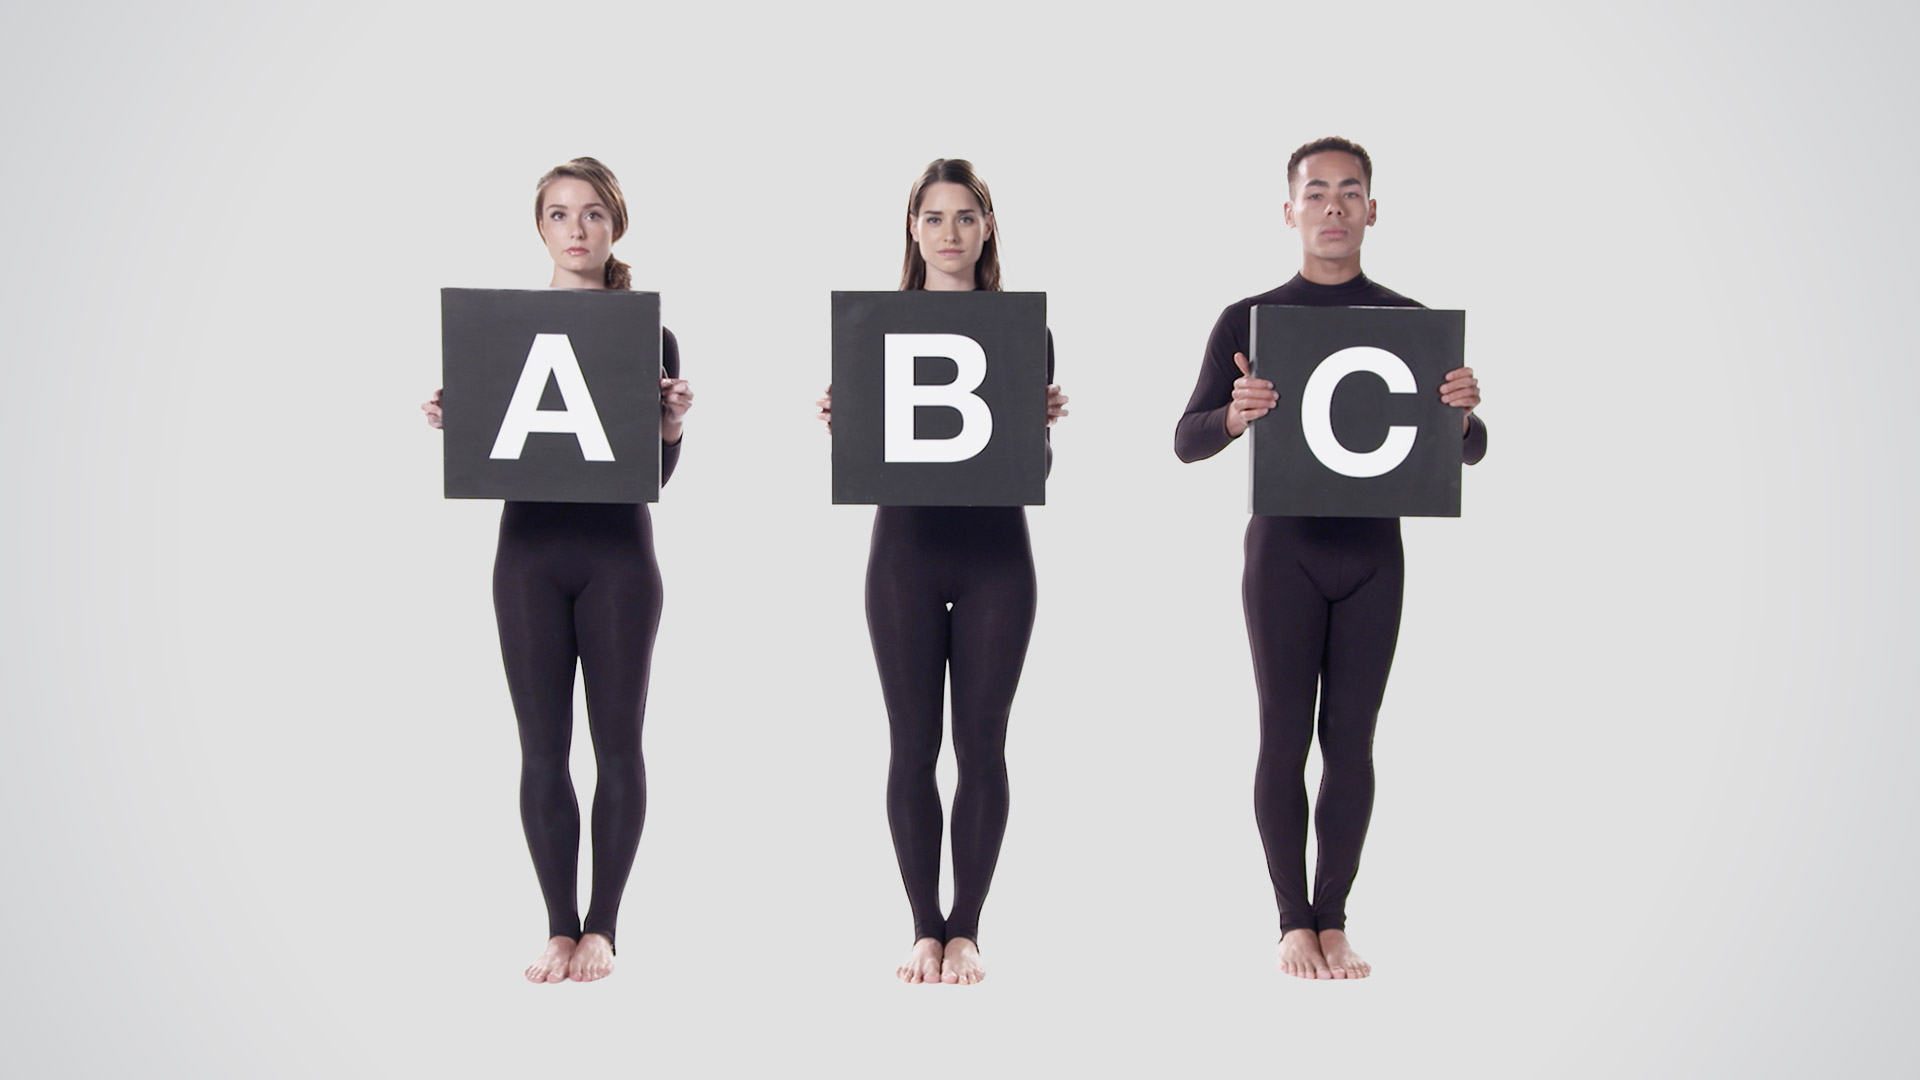 An image showing three people standing in a line. Each one is holding a board, with a letter printed onto it. The letters shown are A B and C.